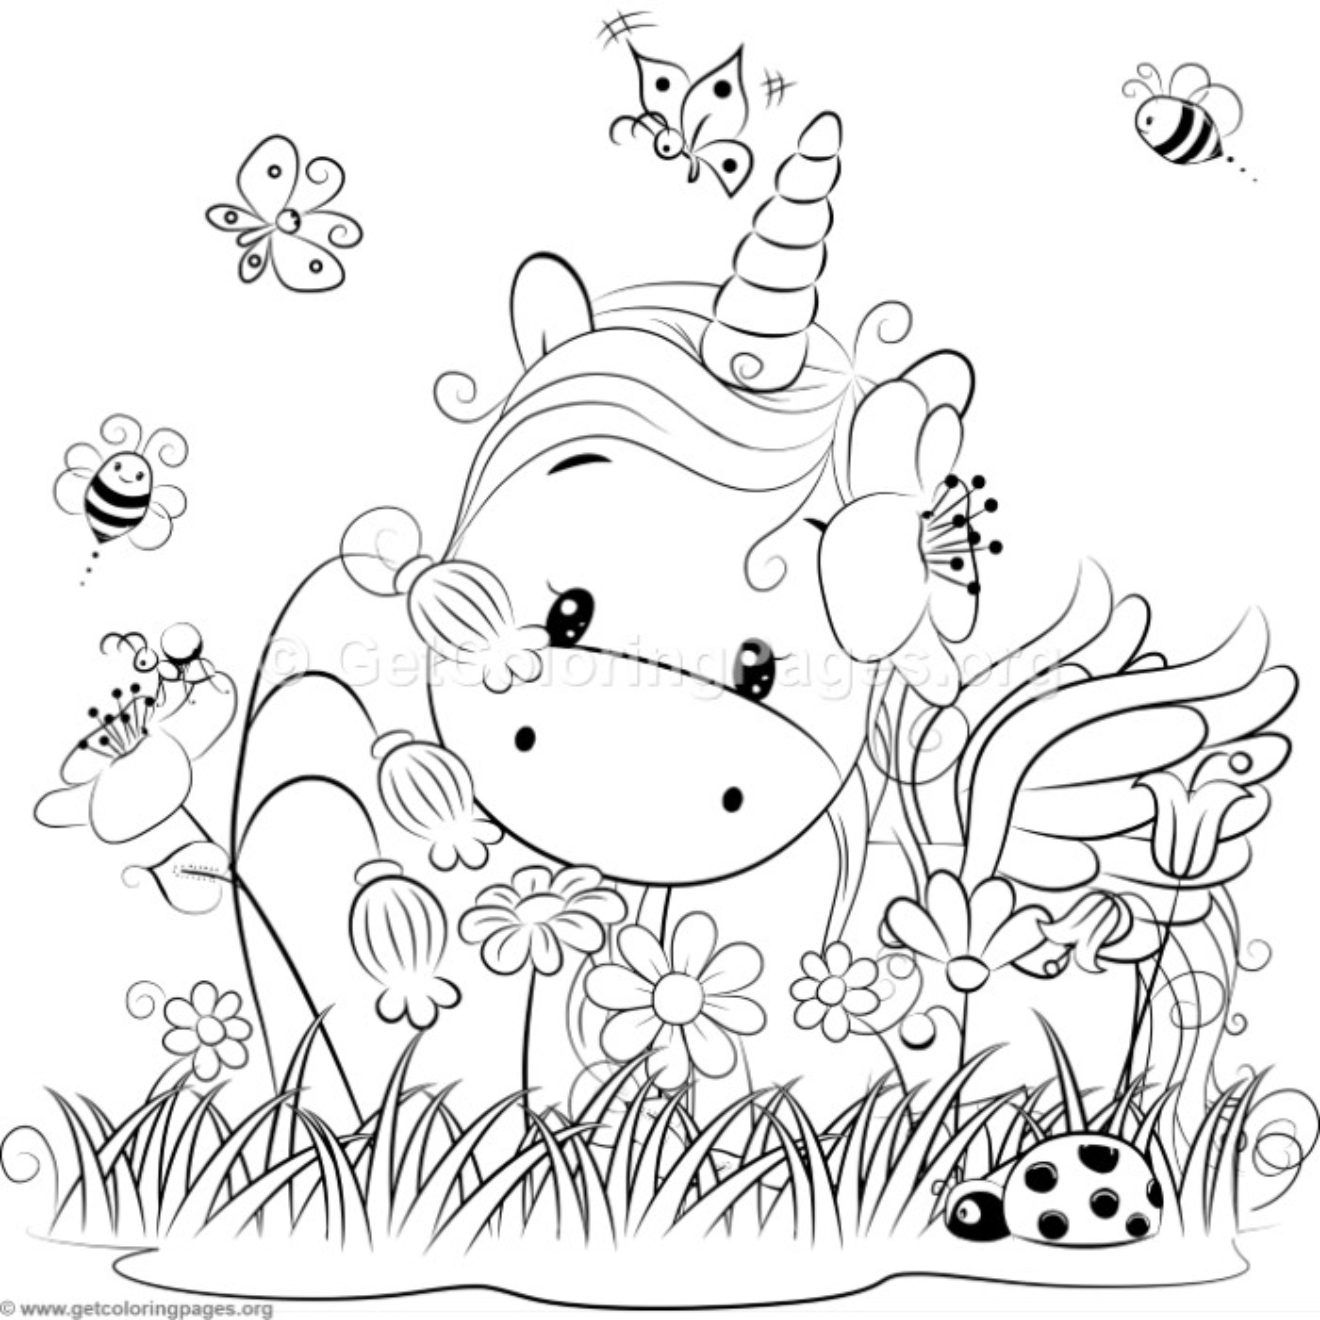 Emily Tinkerbell Ausmalbilder : Cute Unicorn 3 Coloring Pages Getcoloringpages Org 2paperstuff